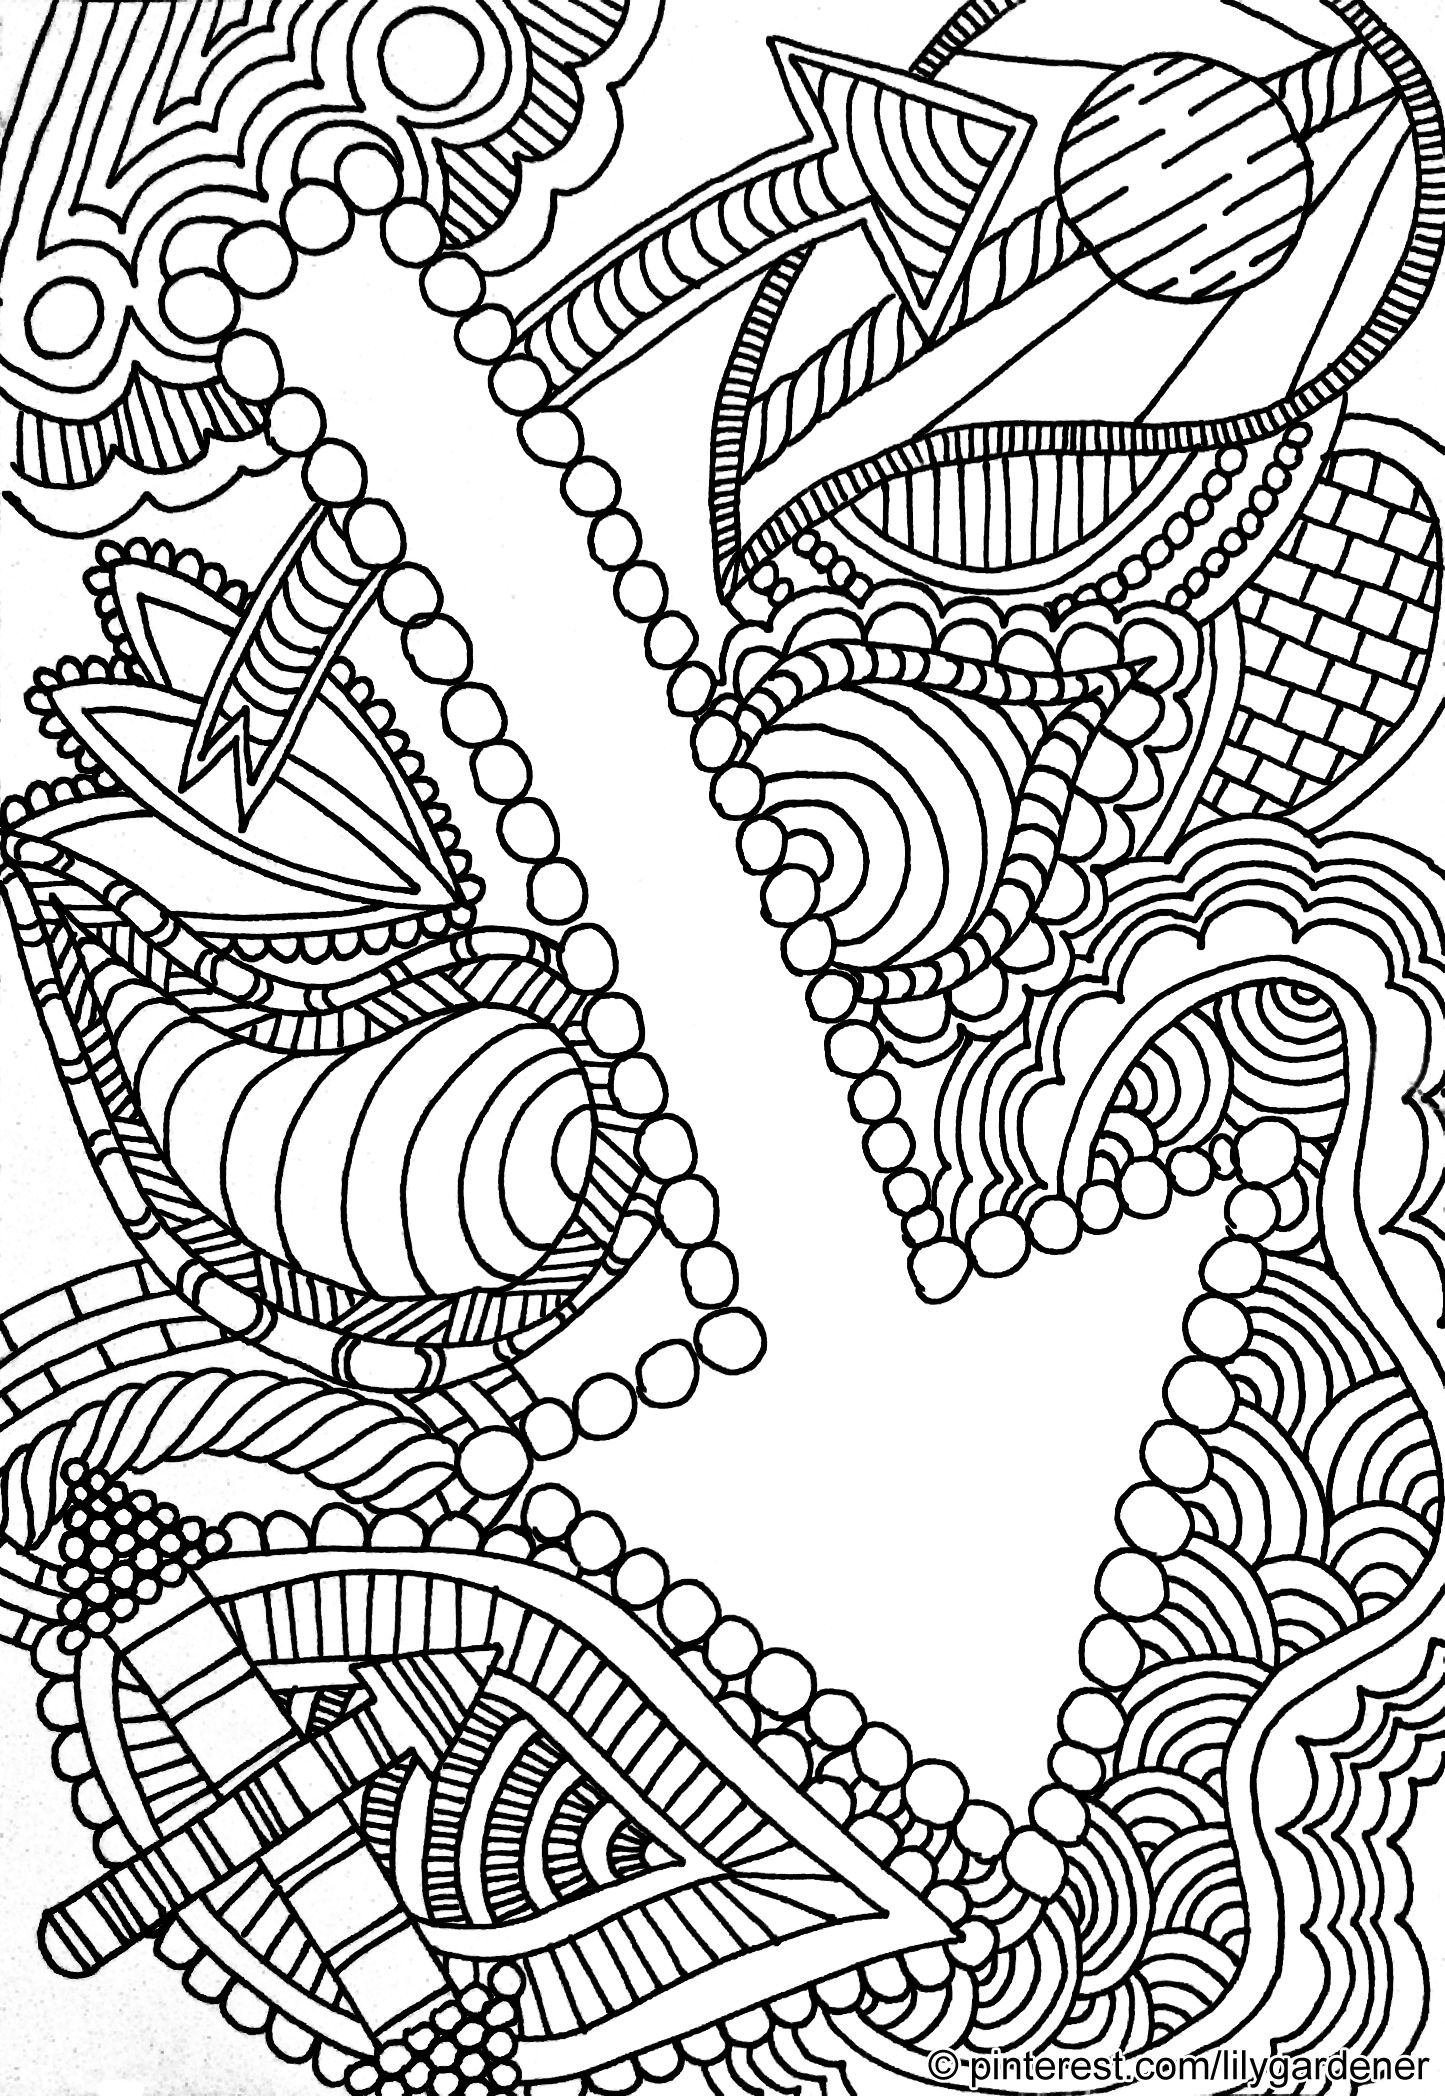 printable pictures to color for adults animal coloring pages for adults best coloring pages for to for printable pictures adults color